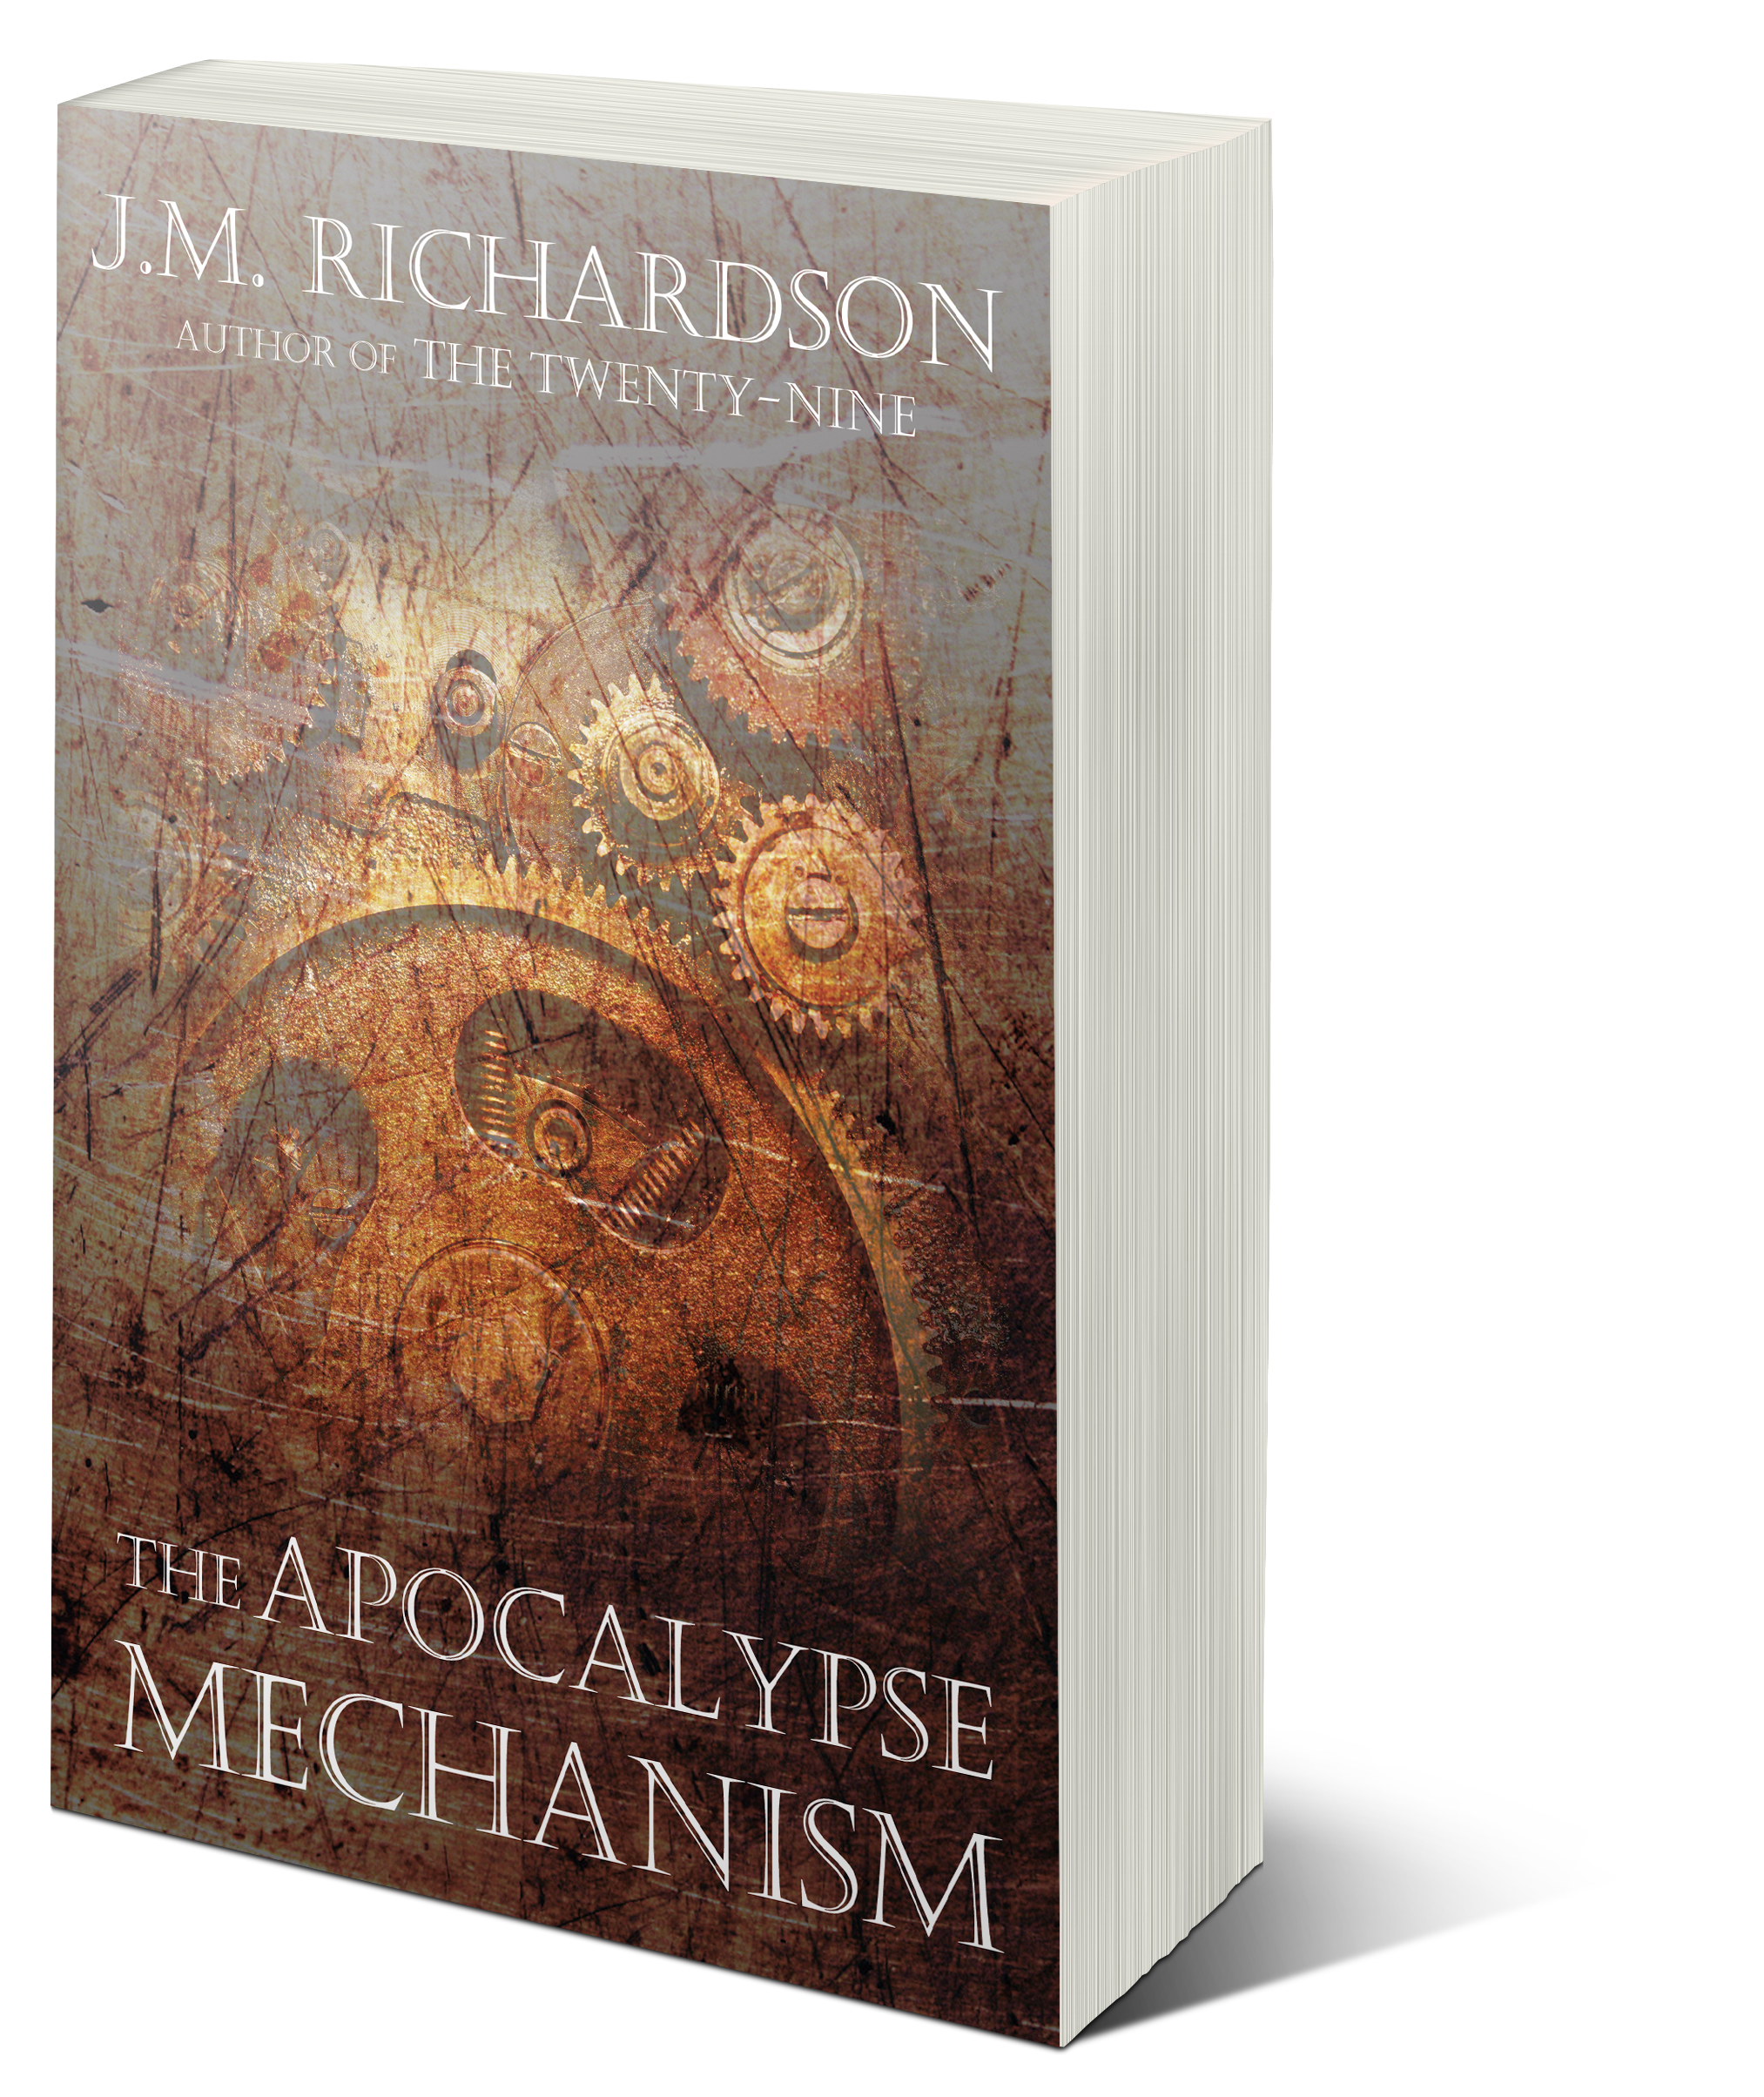 Now Available: The Apocalypse Mechanism